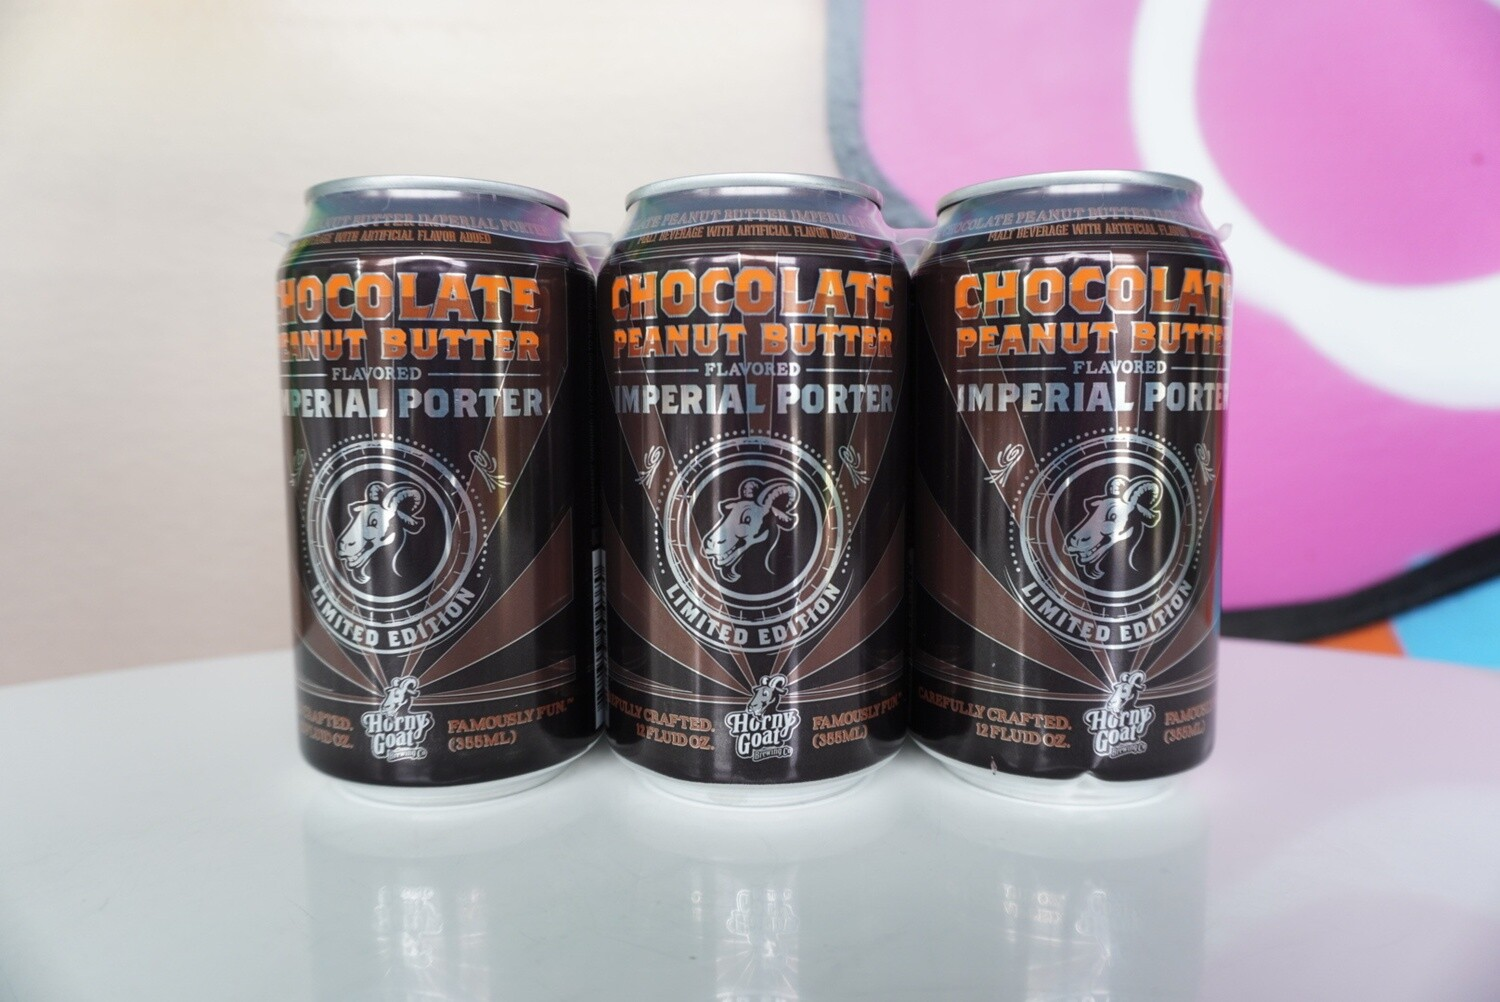 Horny Goat - Chocolate Peanut Butter Porter - 6.5% ABV - 6 Pack